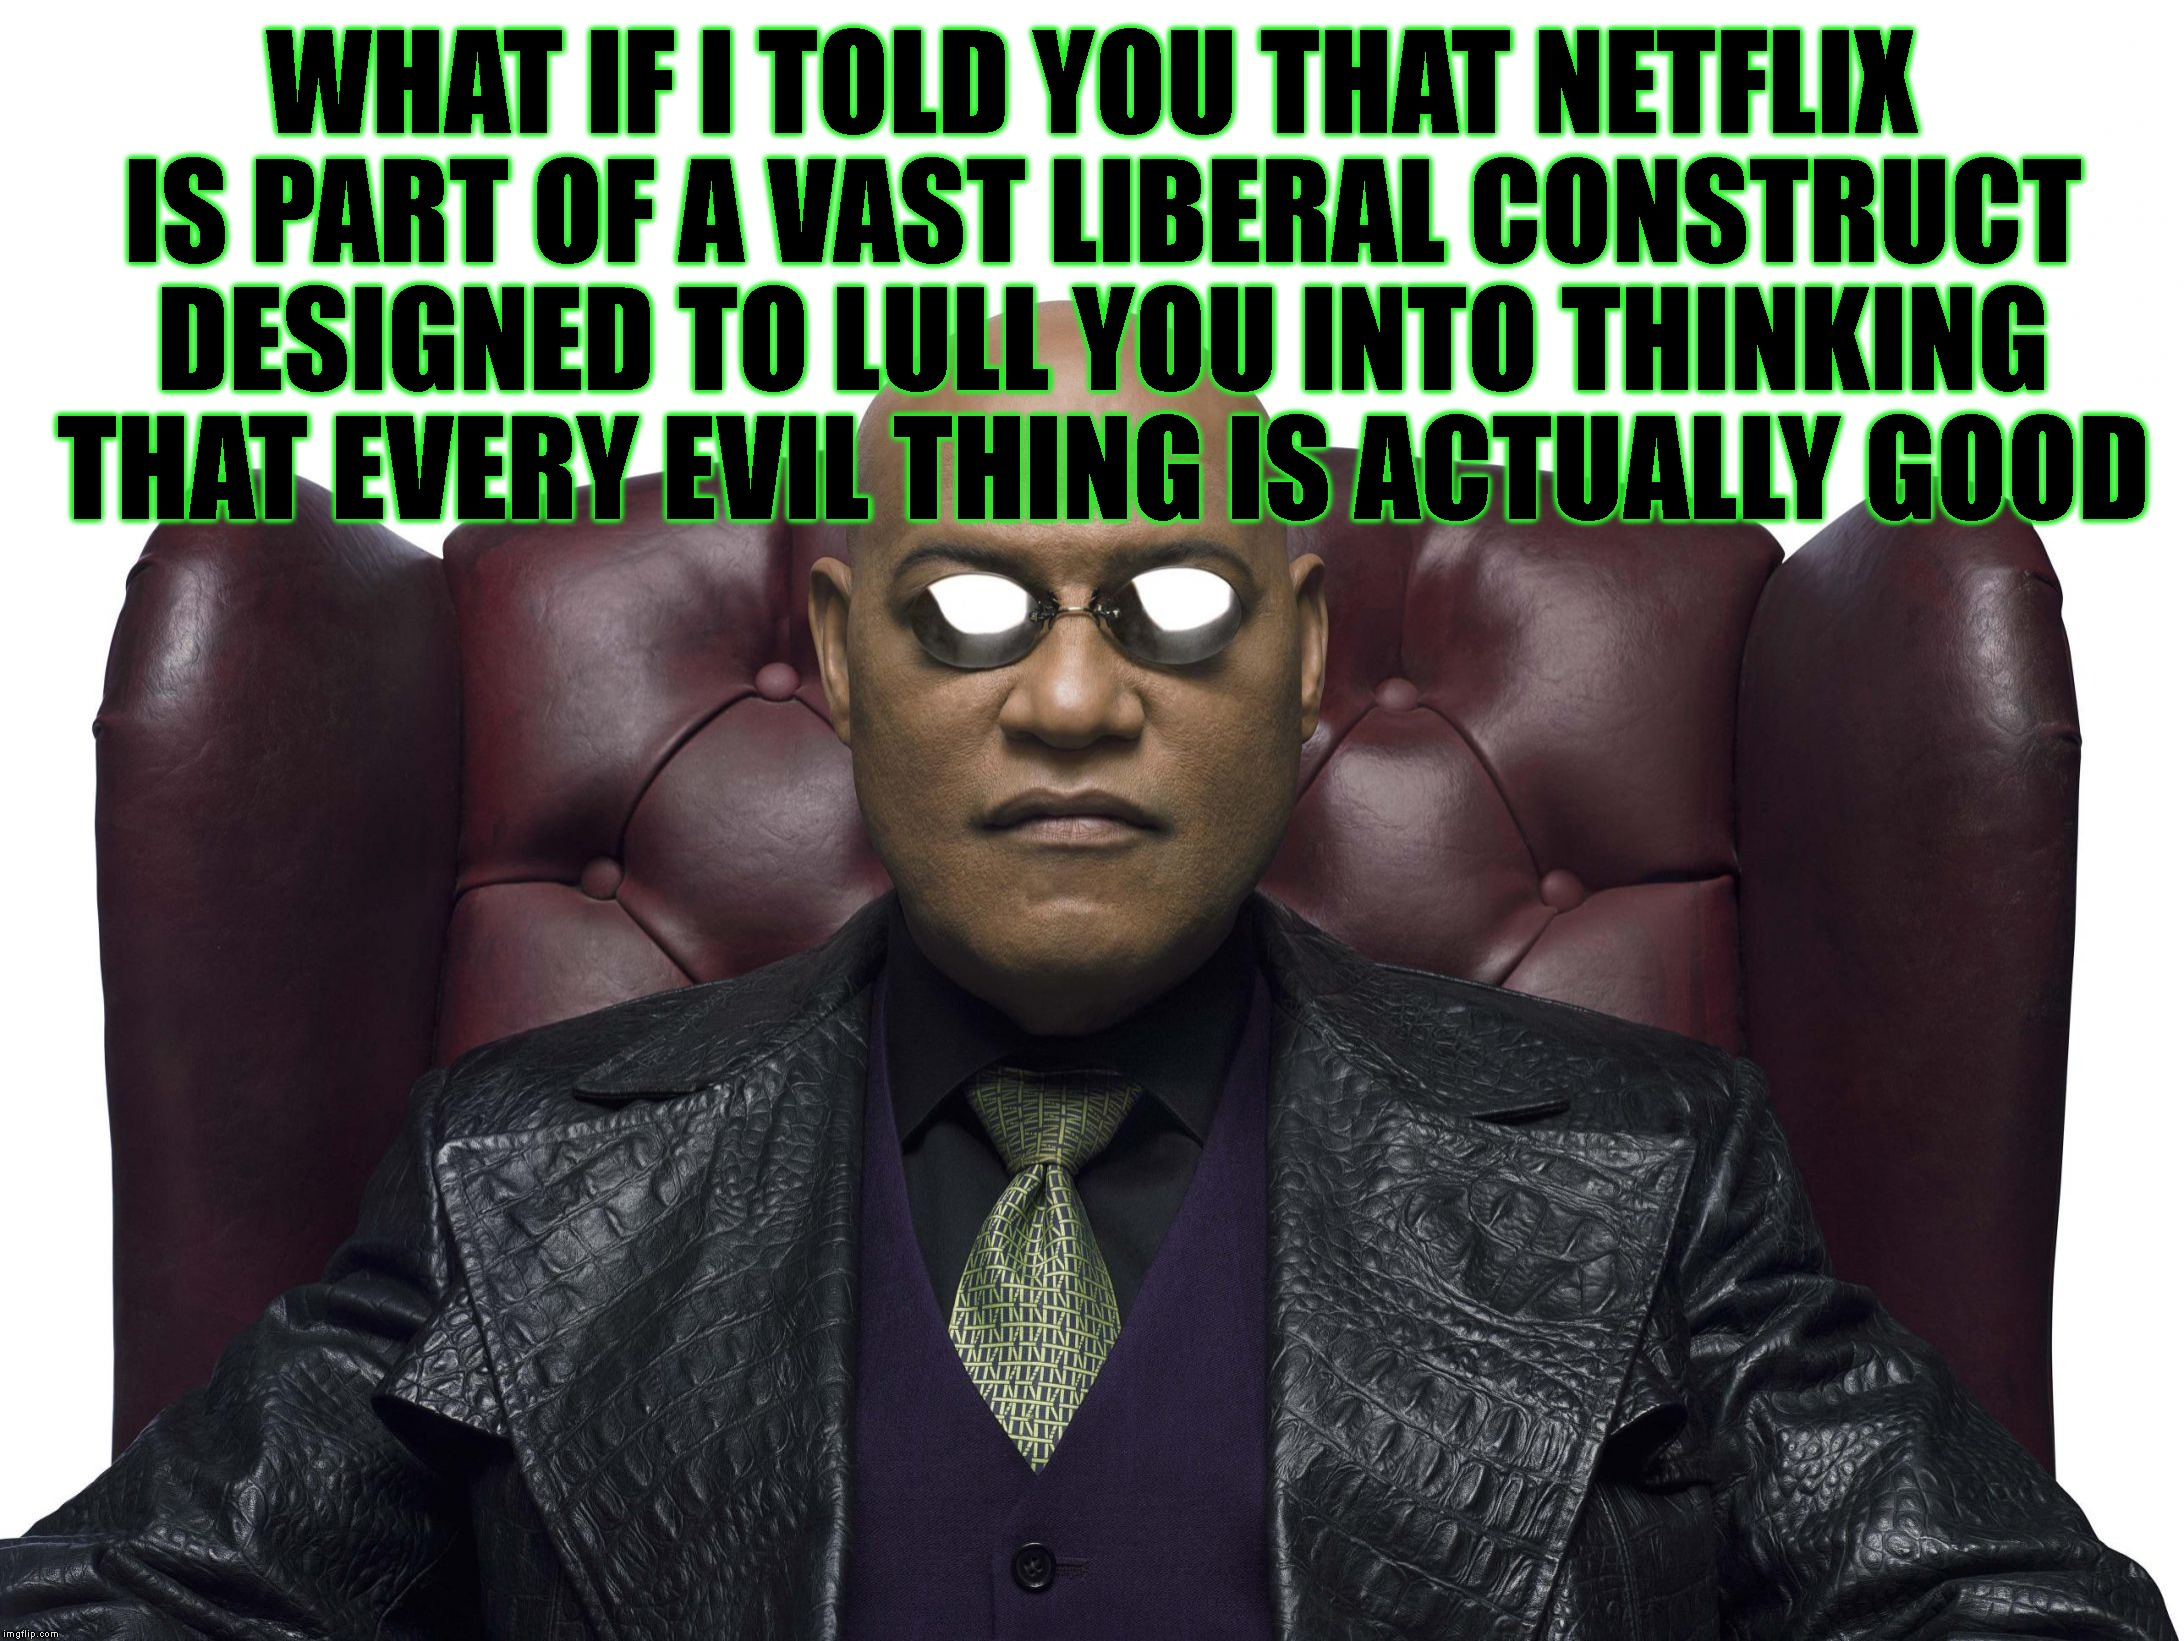 WHAT IF I TOLD YOU THAT NETFLIX IS PART OF A VAST LIBERAL CONSTRUCT DESIGNED TO LULL YOU INTO THINKING THAT EVERY EVIL THING IS ACTUALLY GOO | made w/ Imgflip meme maker